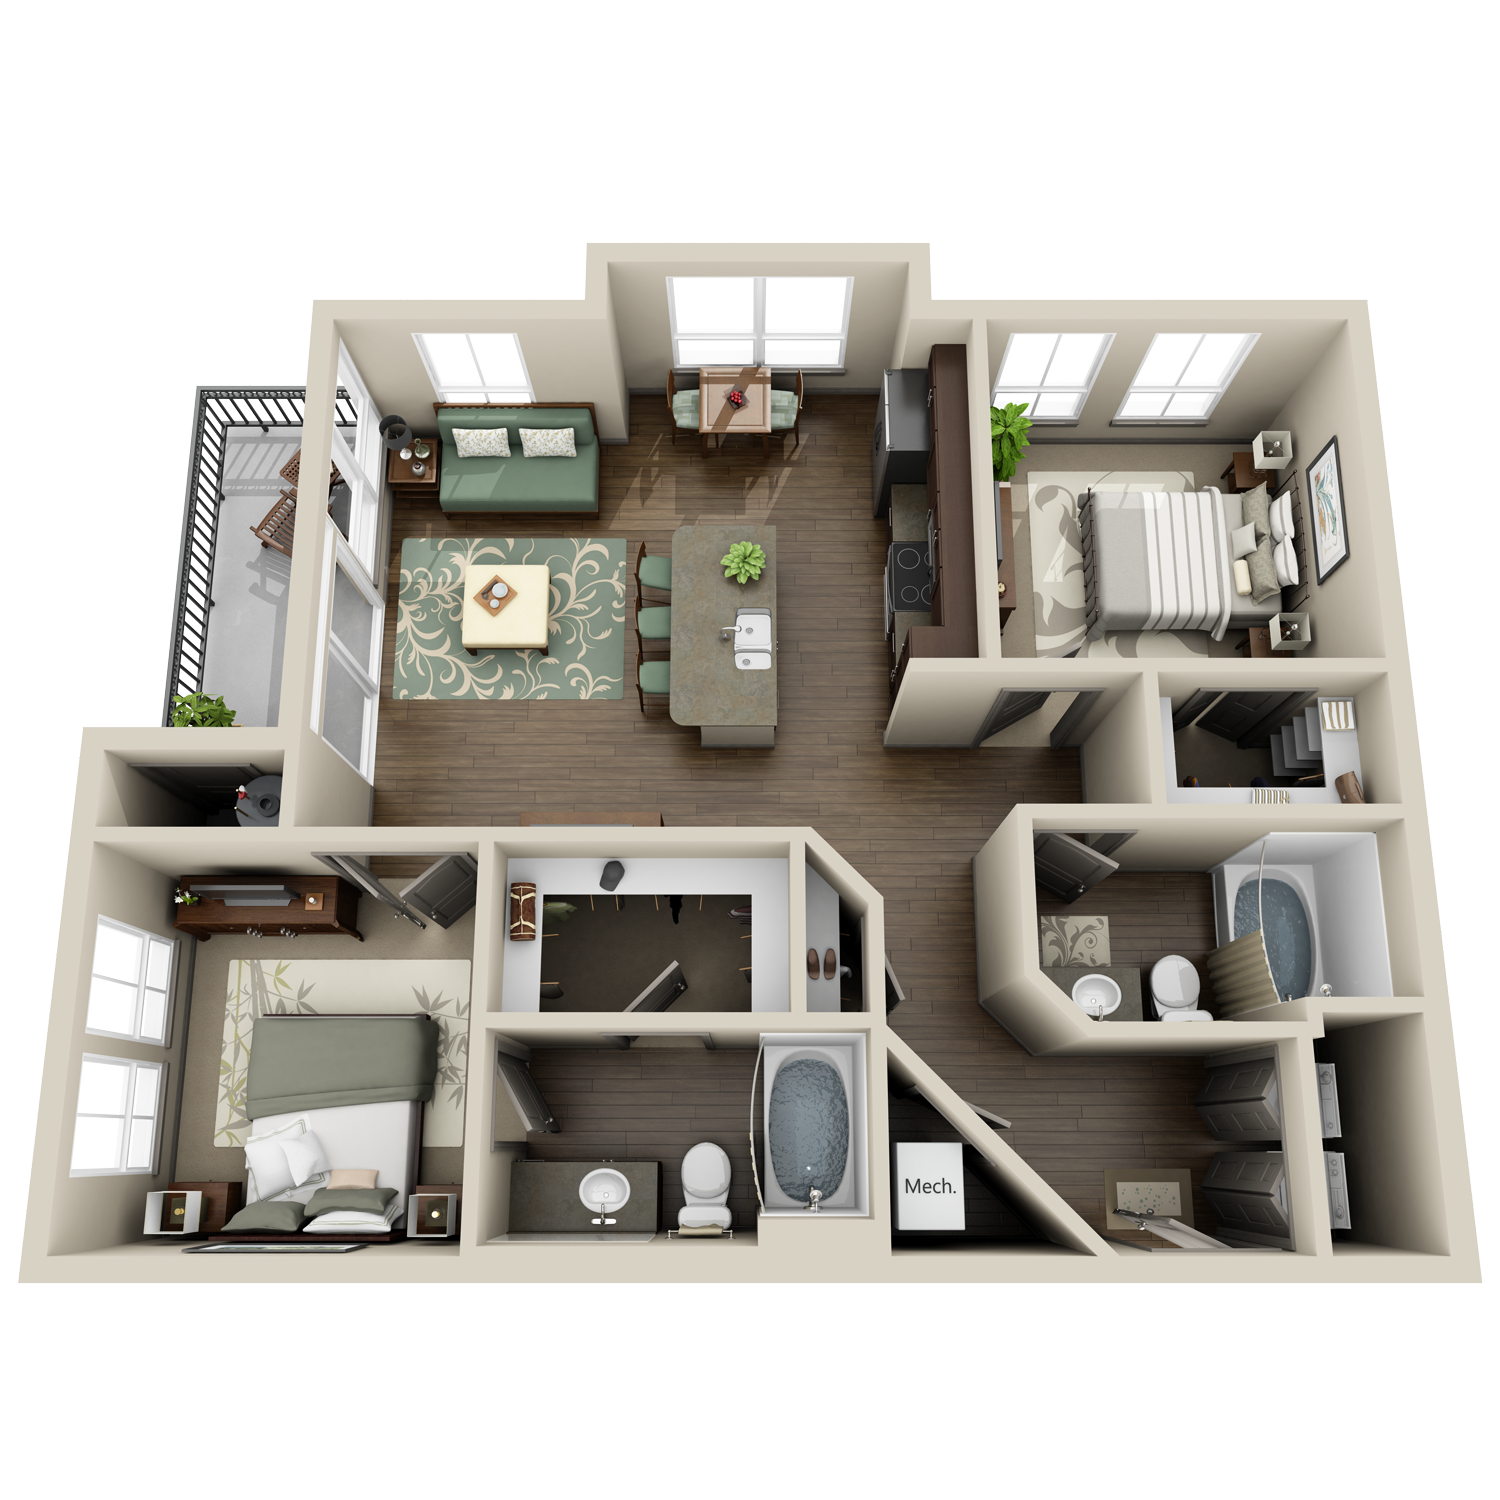 B1 floor plan featuring 2 bedrooms and 2 baths